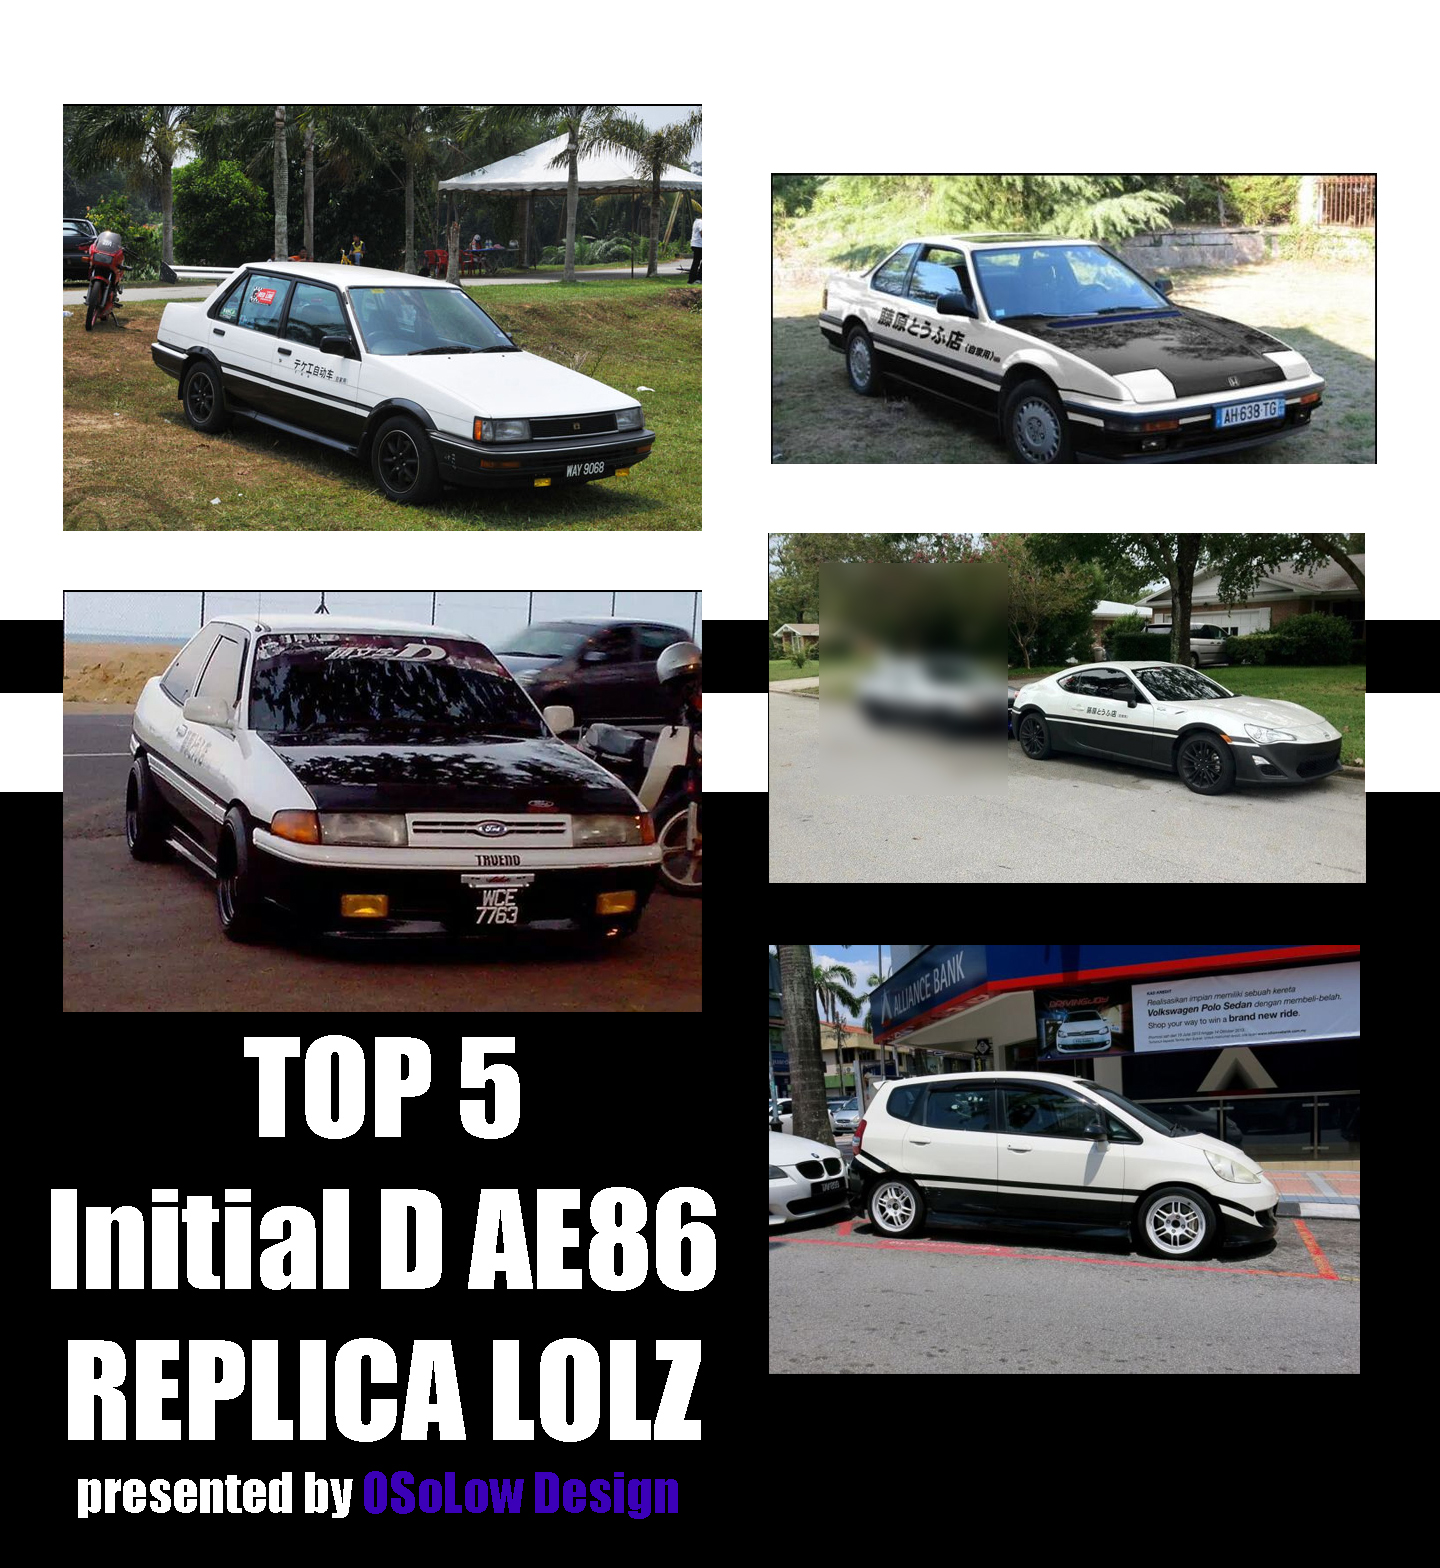 Top 5 Initial D Replica's That Aren't AE86's